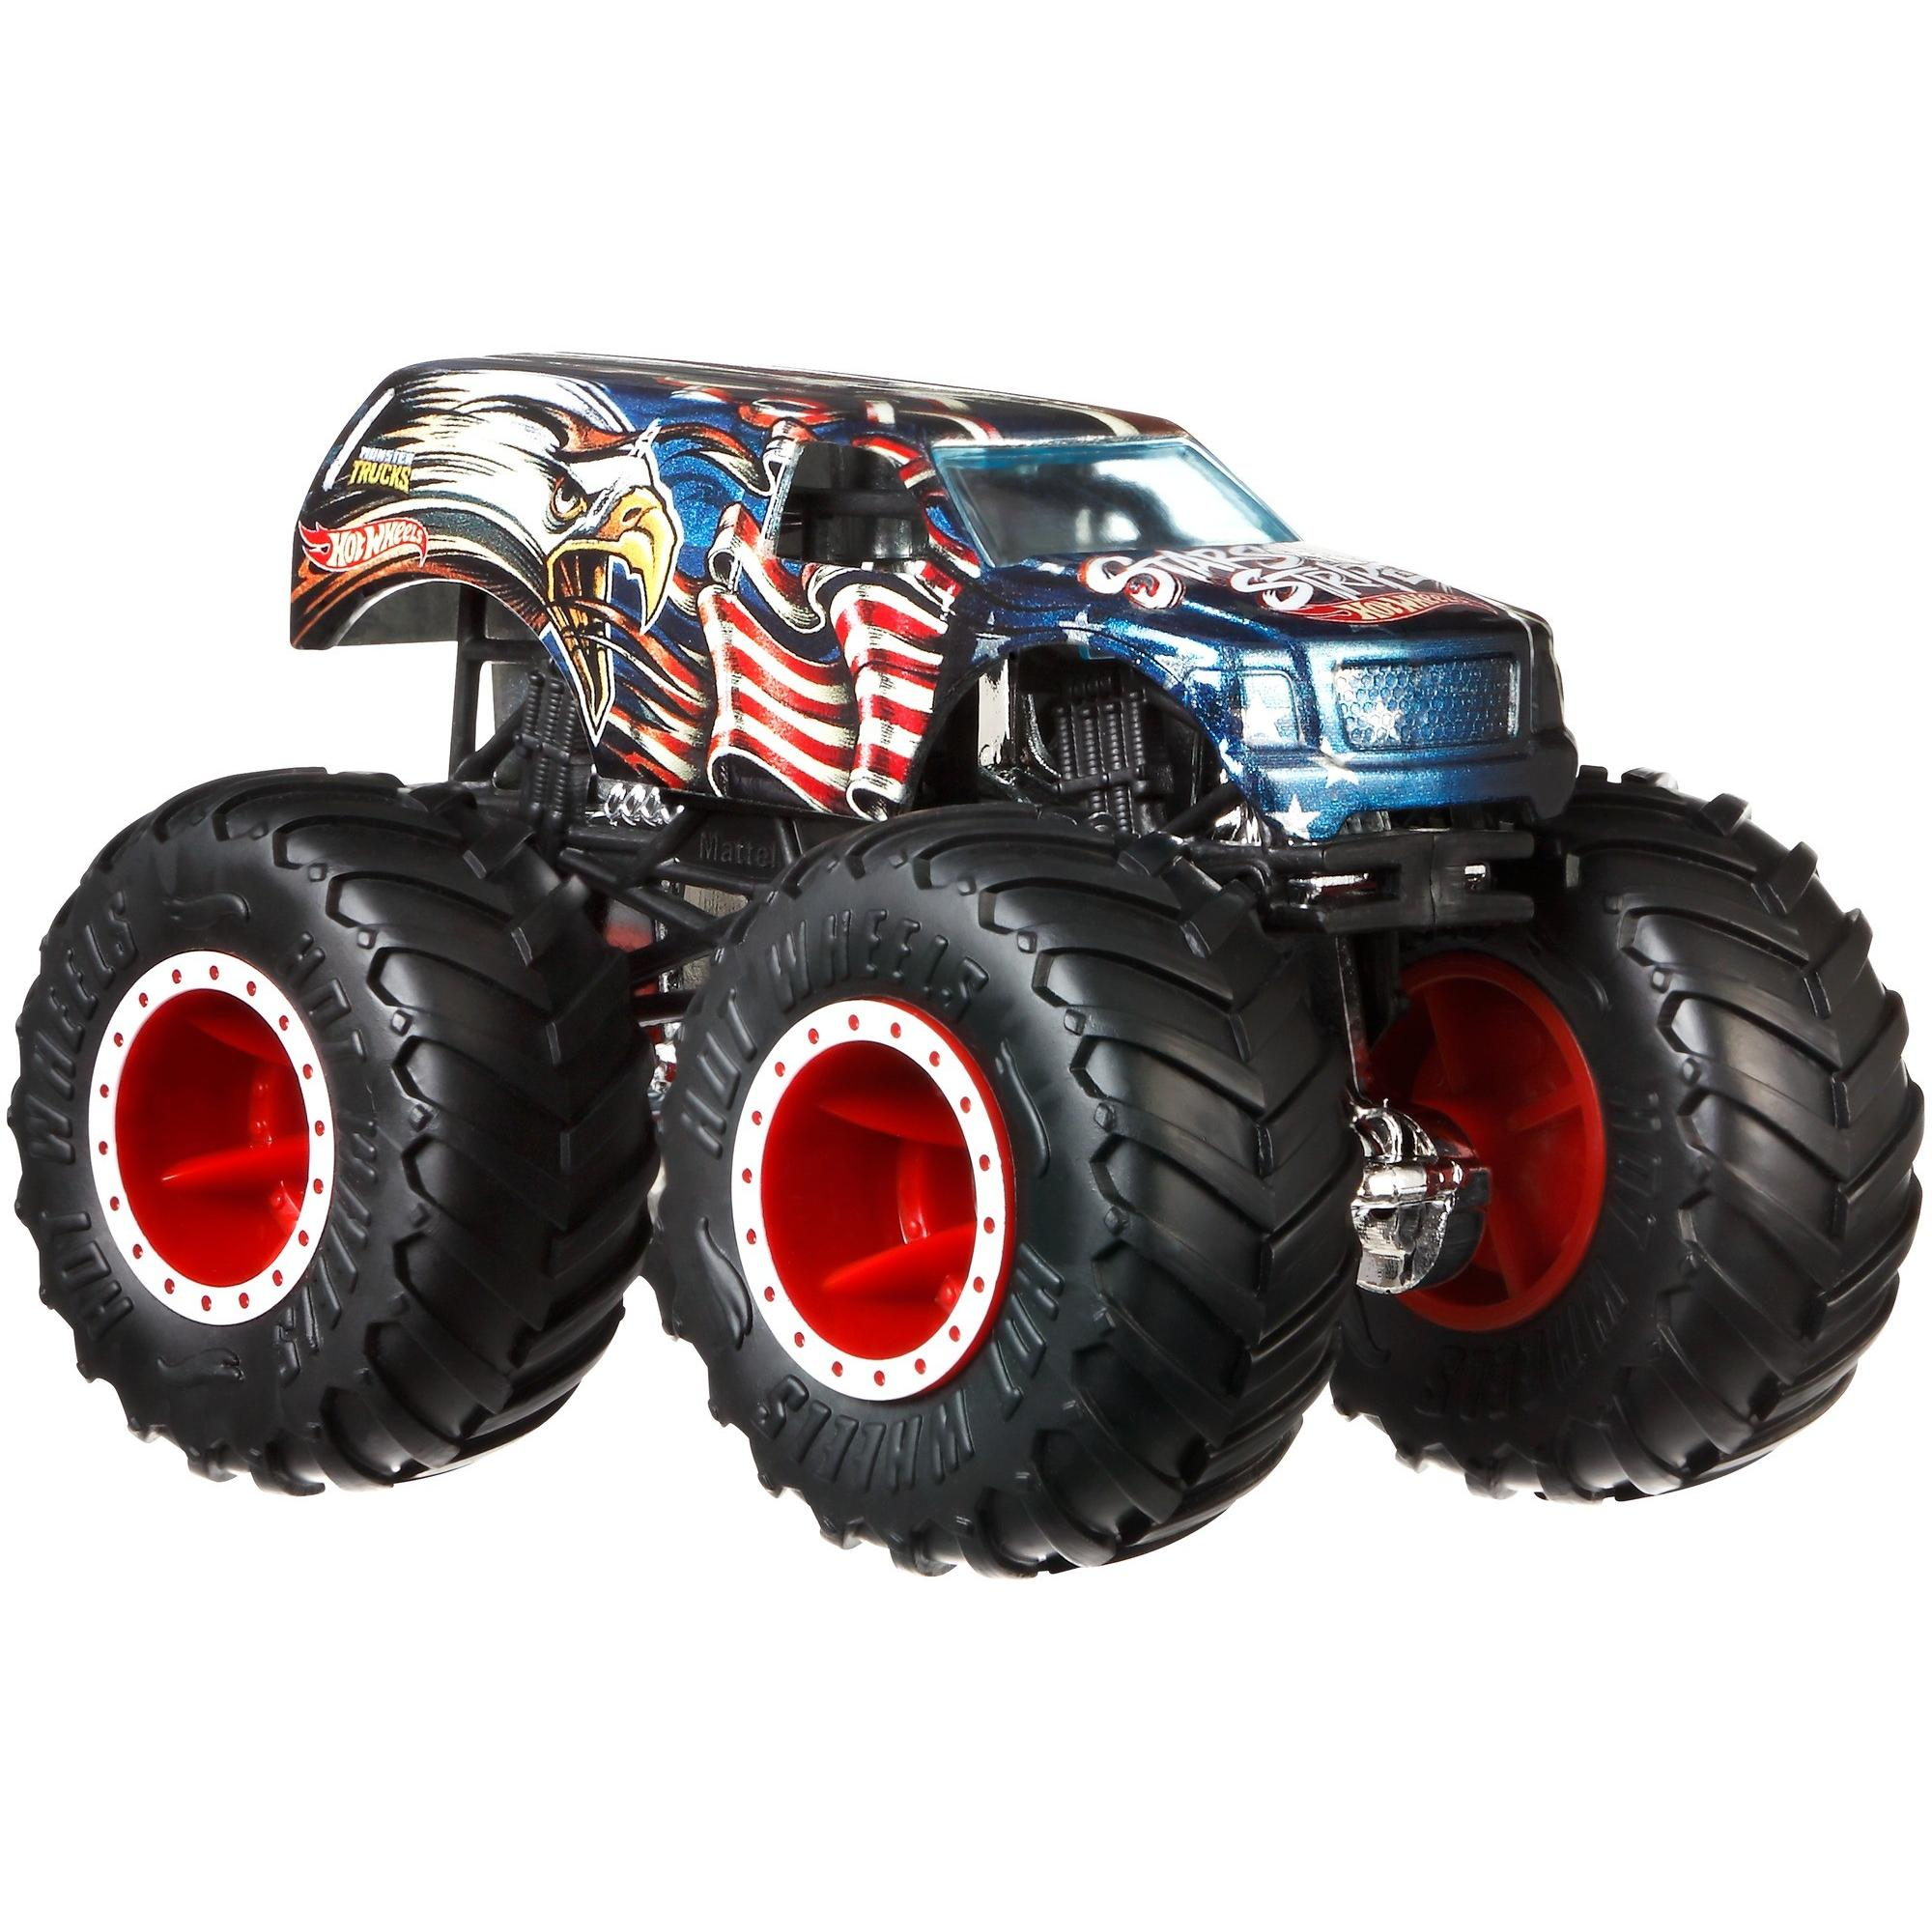 Diecast & Vehicles Hotwheels & Other Monster Jam Truck Toy Cars Toys & Games